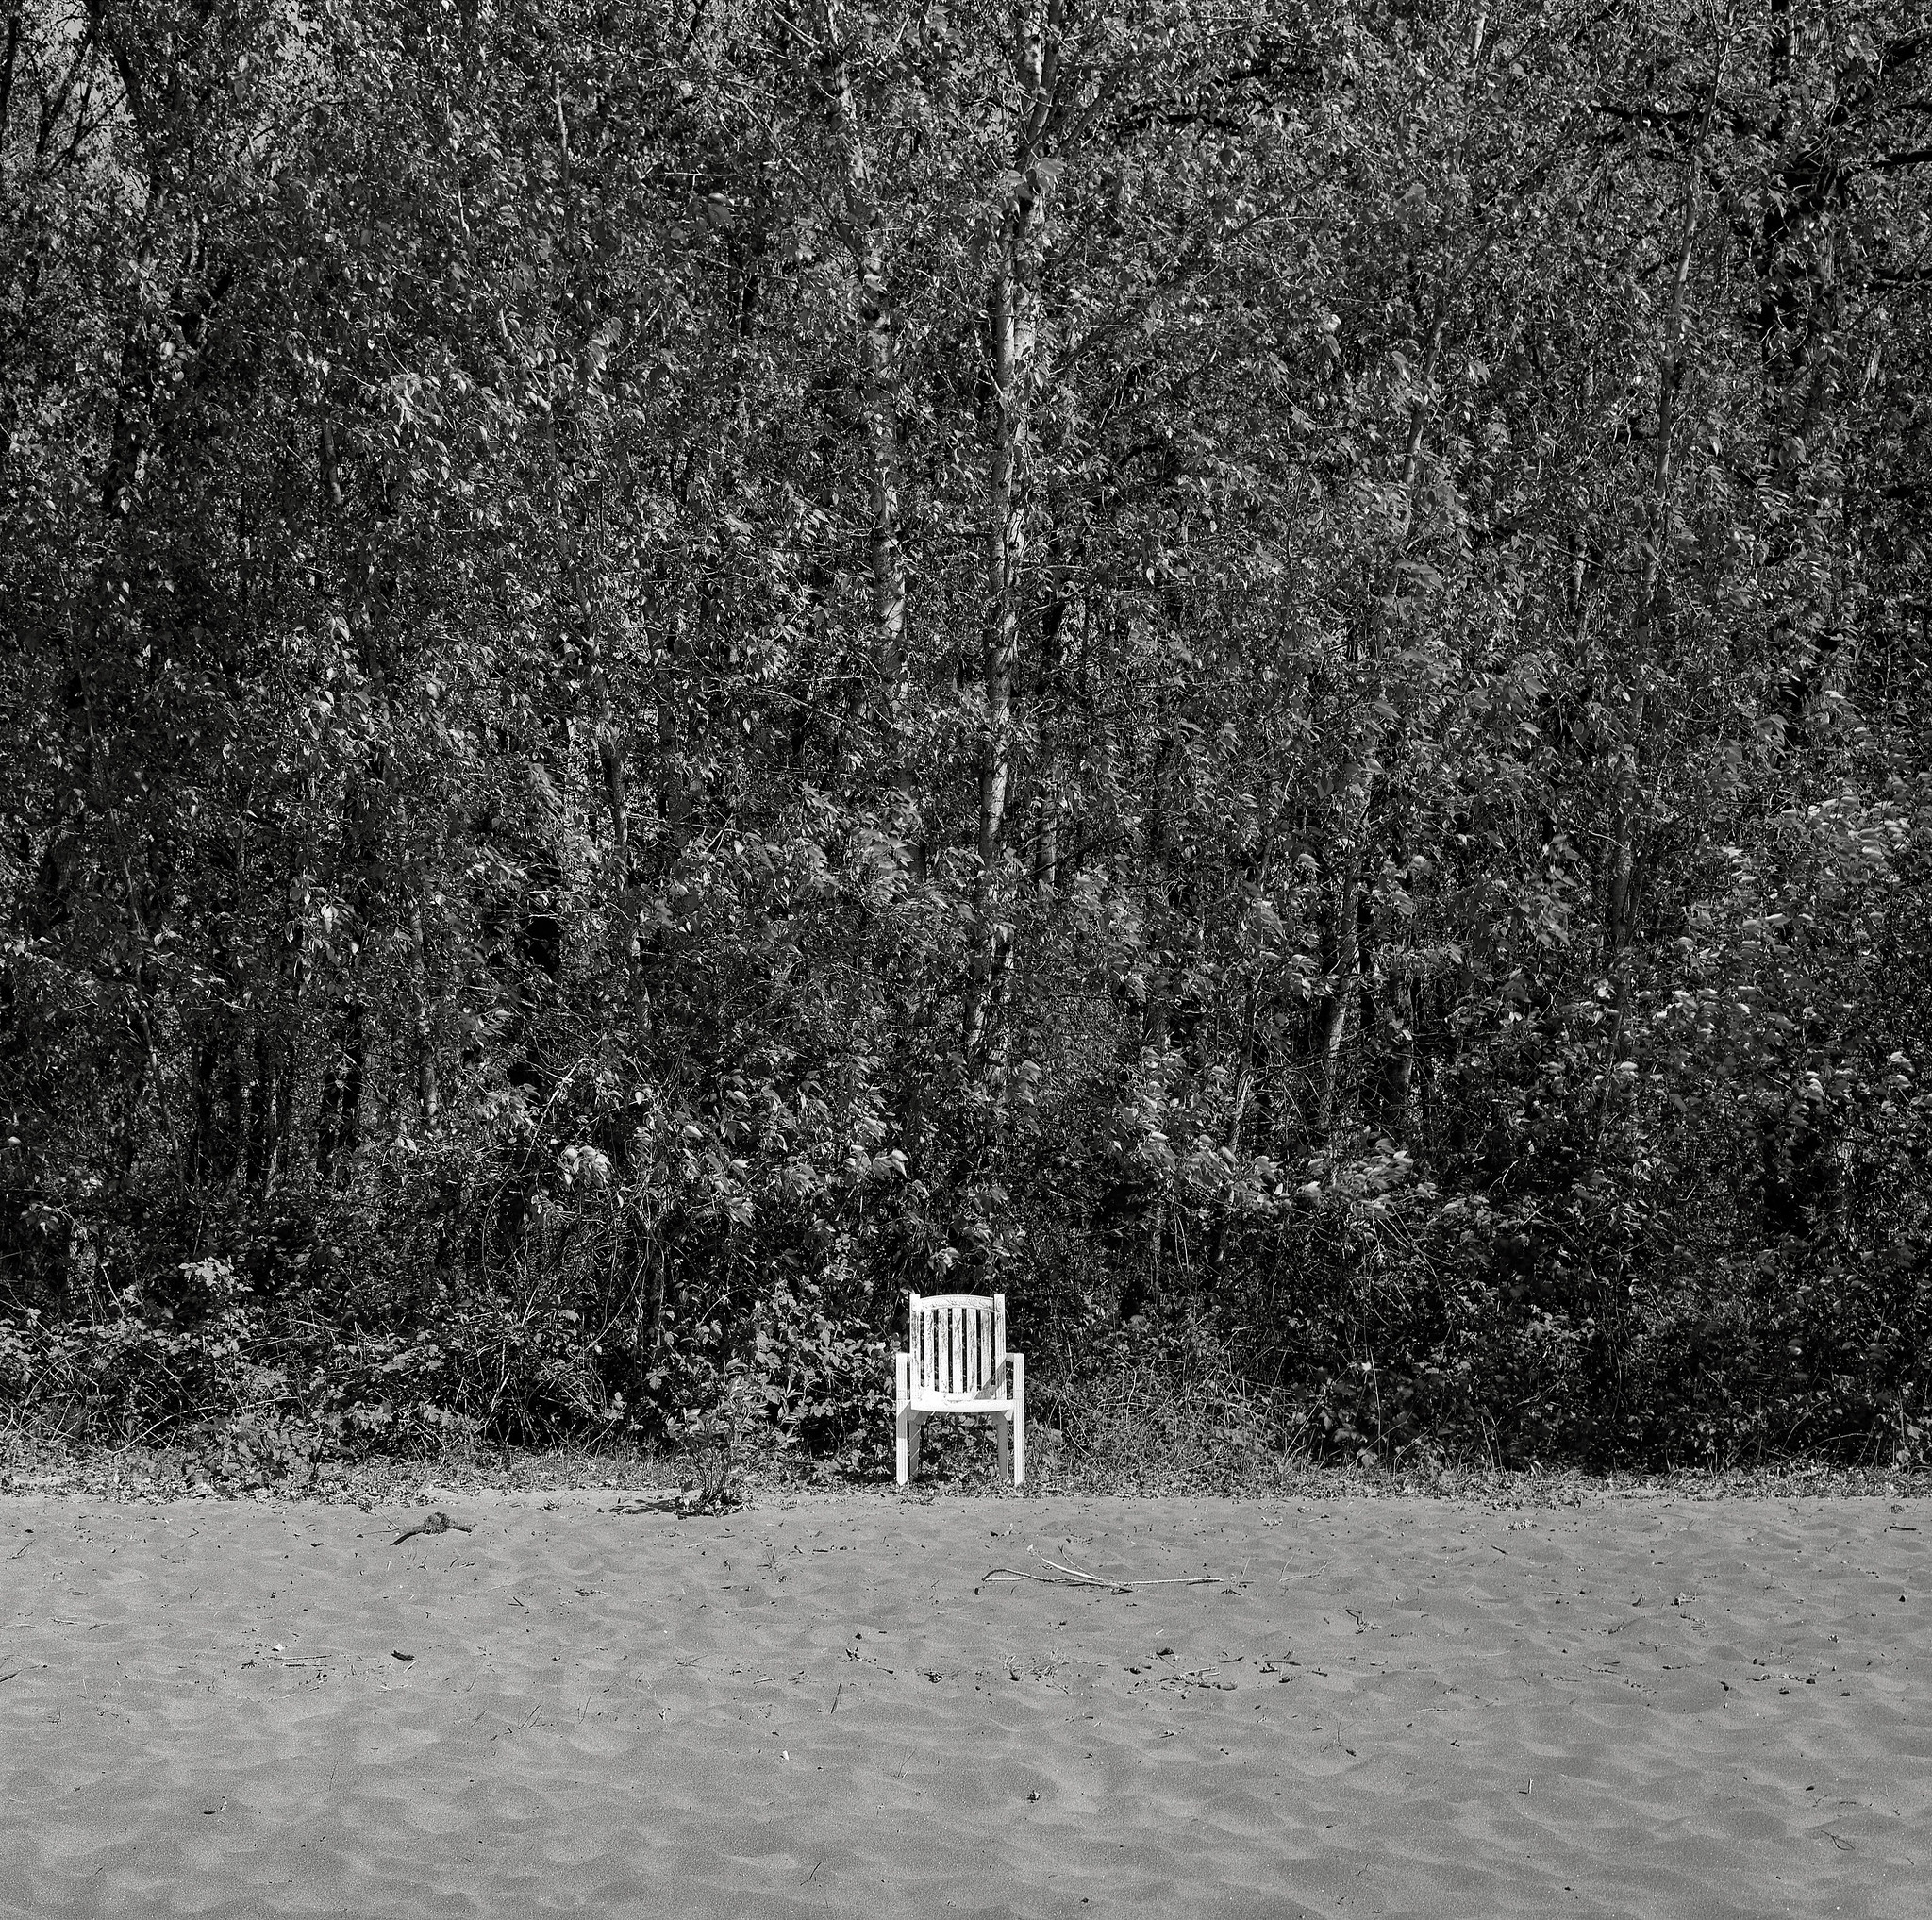 Chair, Sauvie Island, Oregon